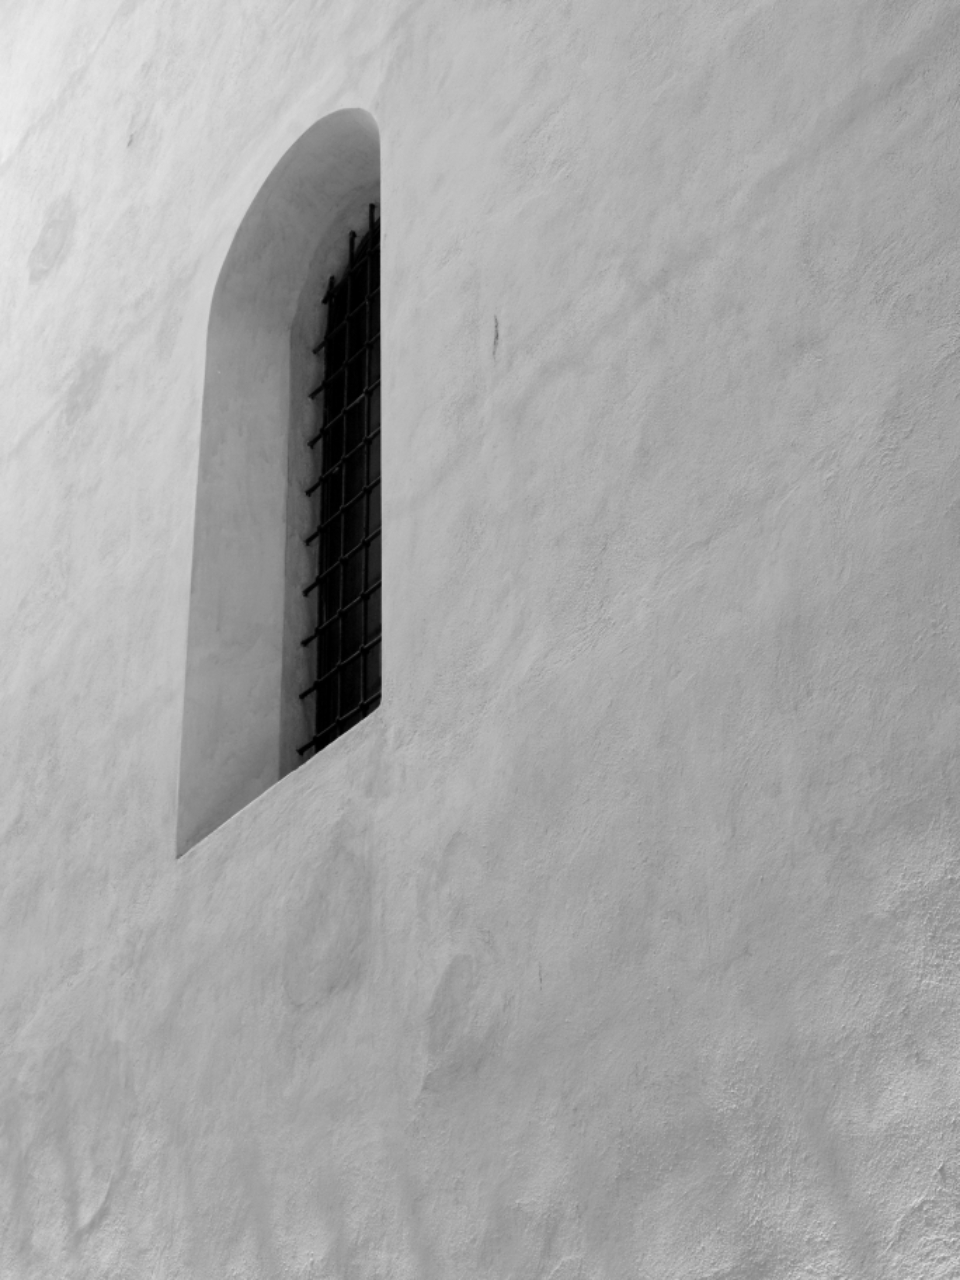 window wall exterior perspective monochromatic architecture design building stone stucco city old